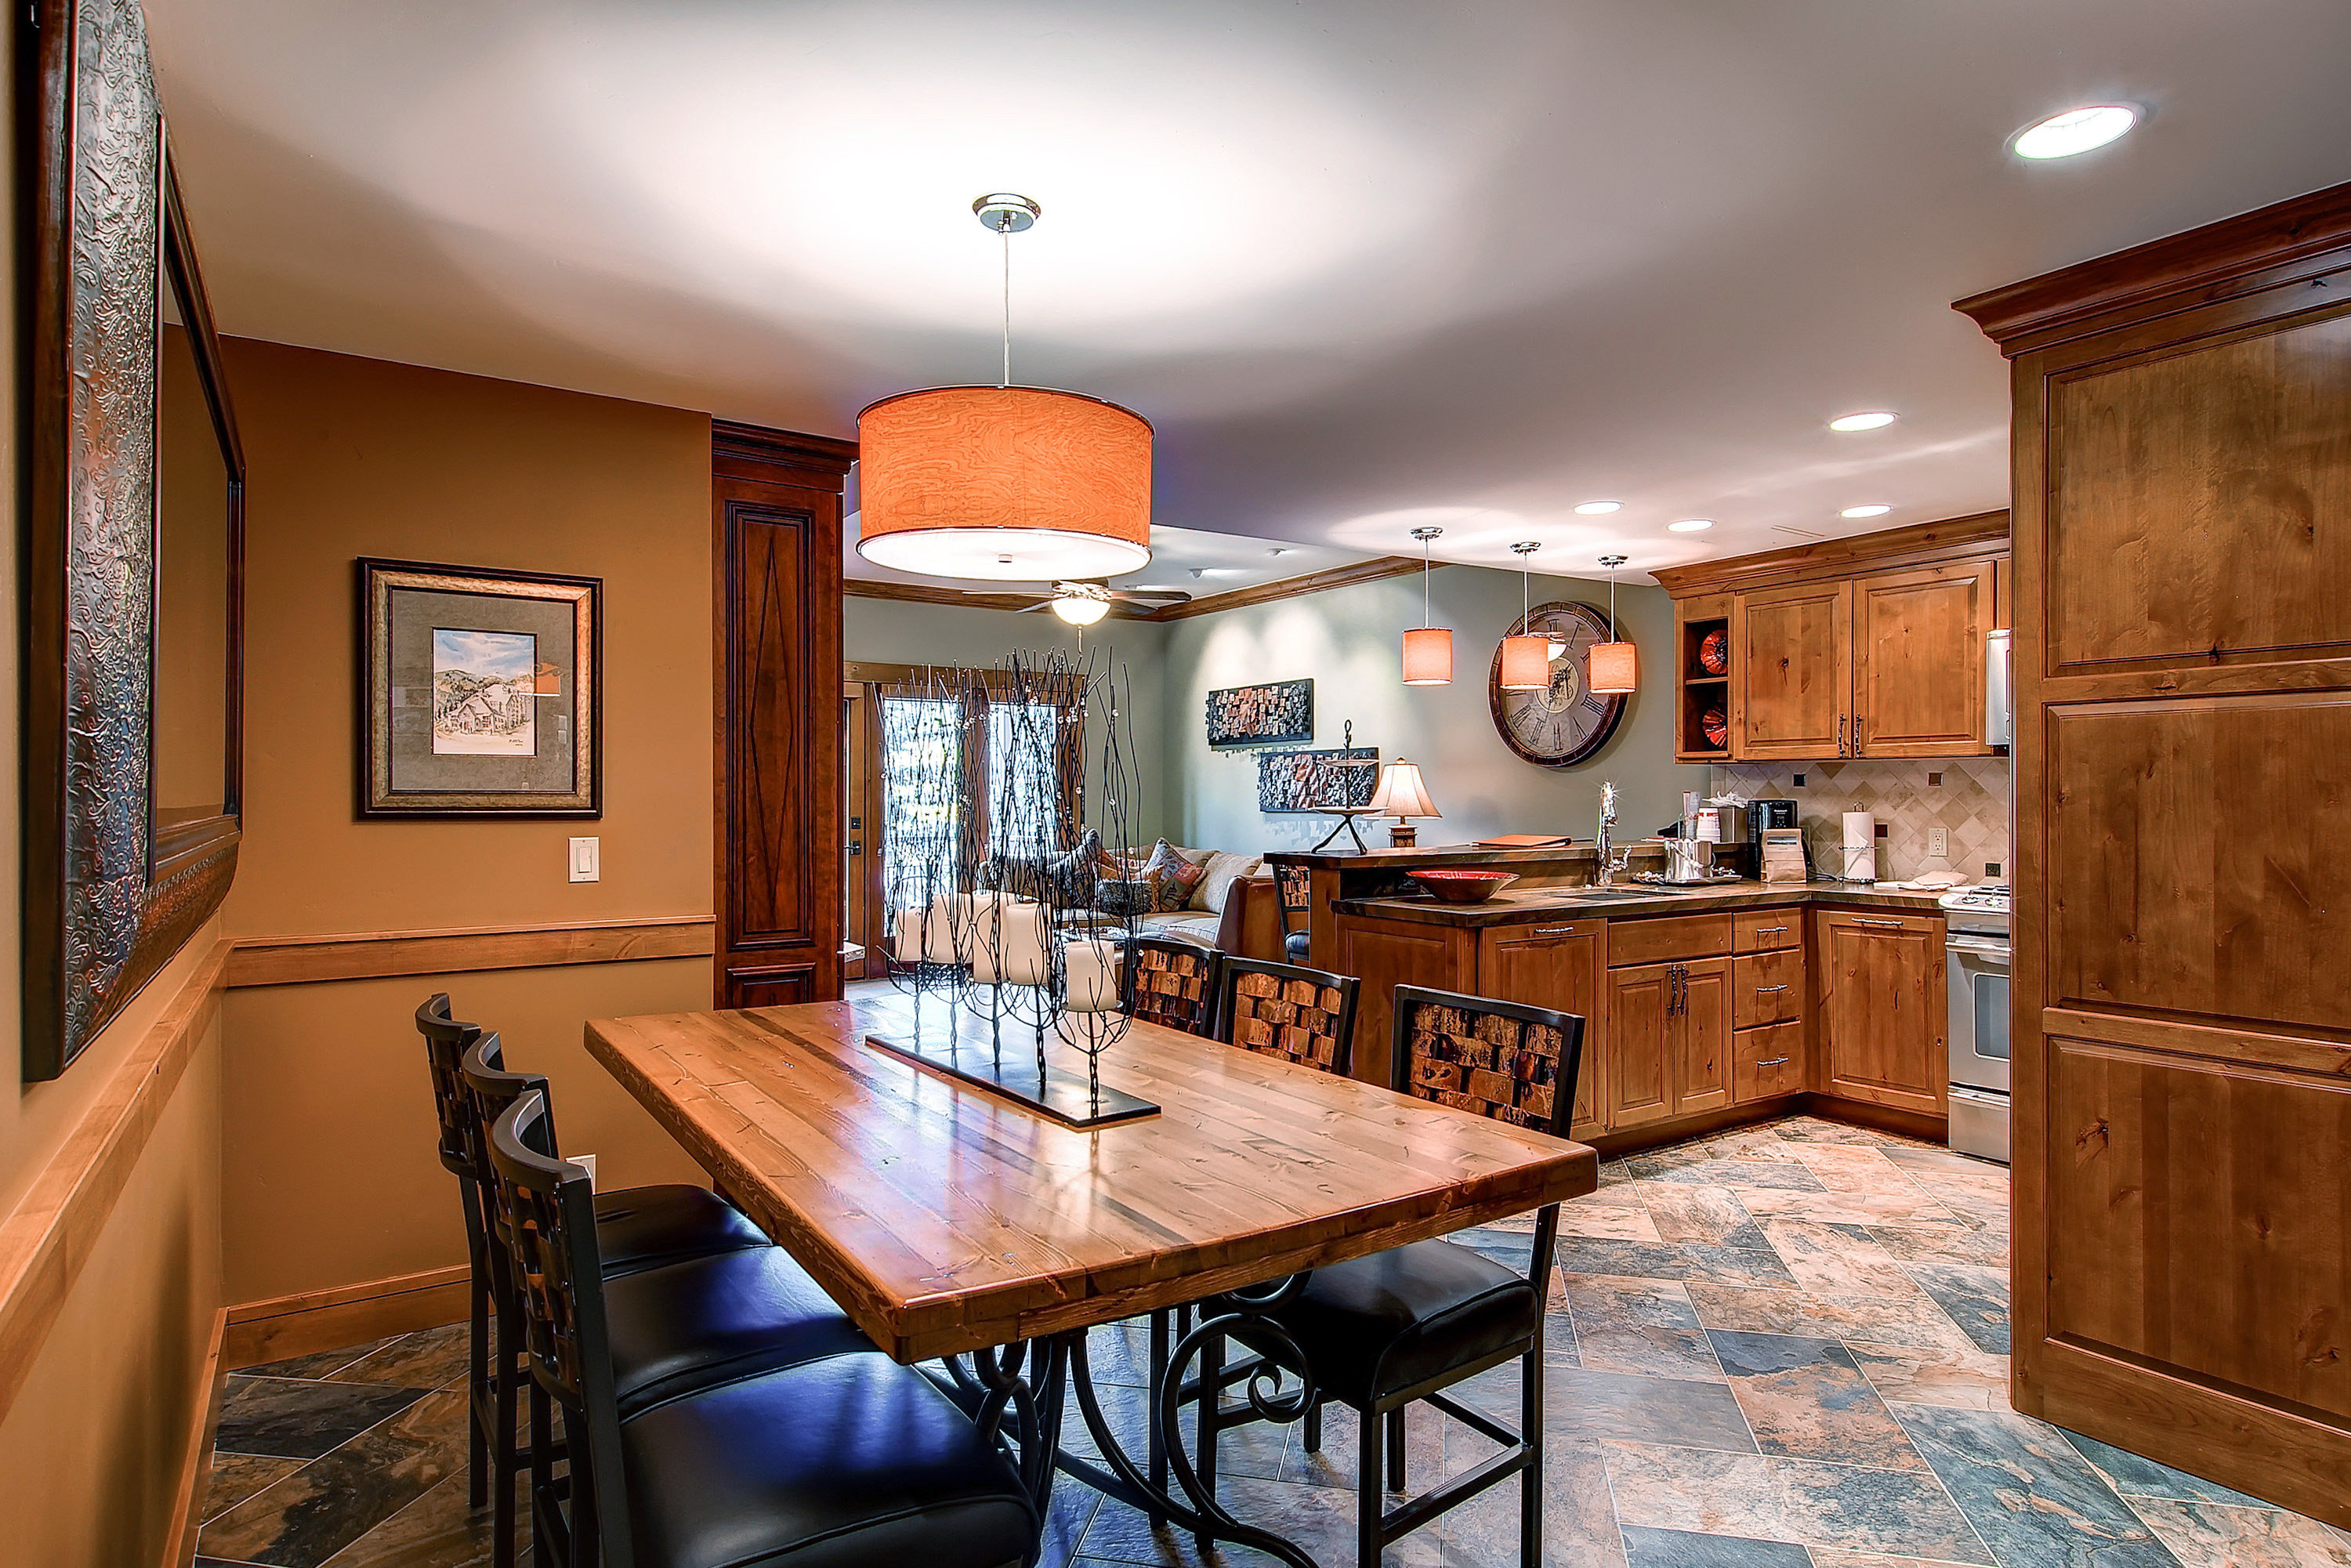 Kitchen Lodge Romantic Ski Suite property home cabinetry wooden hardwood cuisine classique cottage farmhouse living room wood flooring countertop